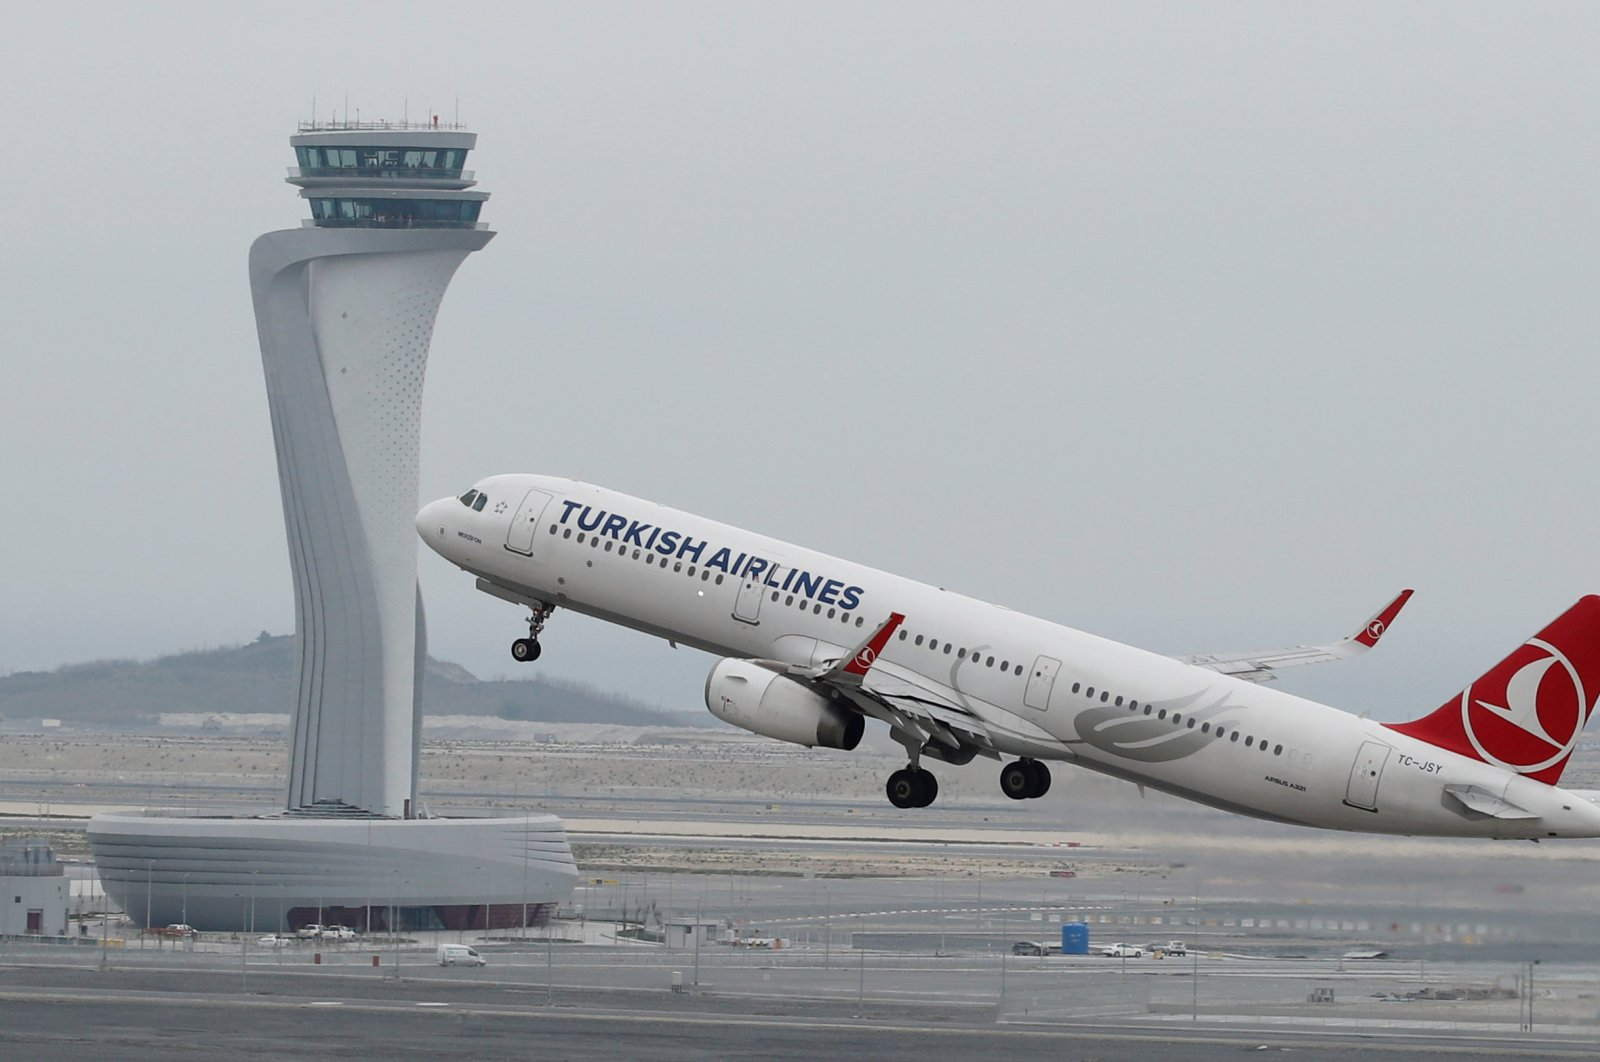 A Turkish Airlines Airbus A321-200 plane takes off from the new Istanbul Airport, Istanbul, Turkey, April 6, 2019. (Reuters Photo)